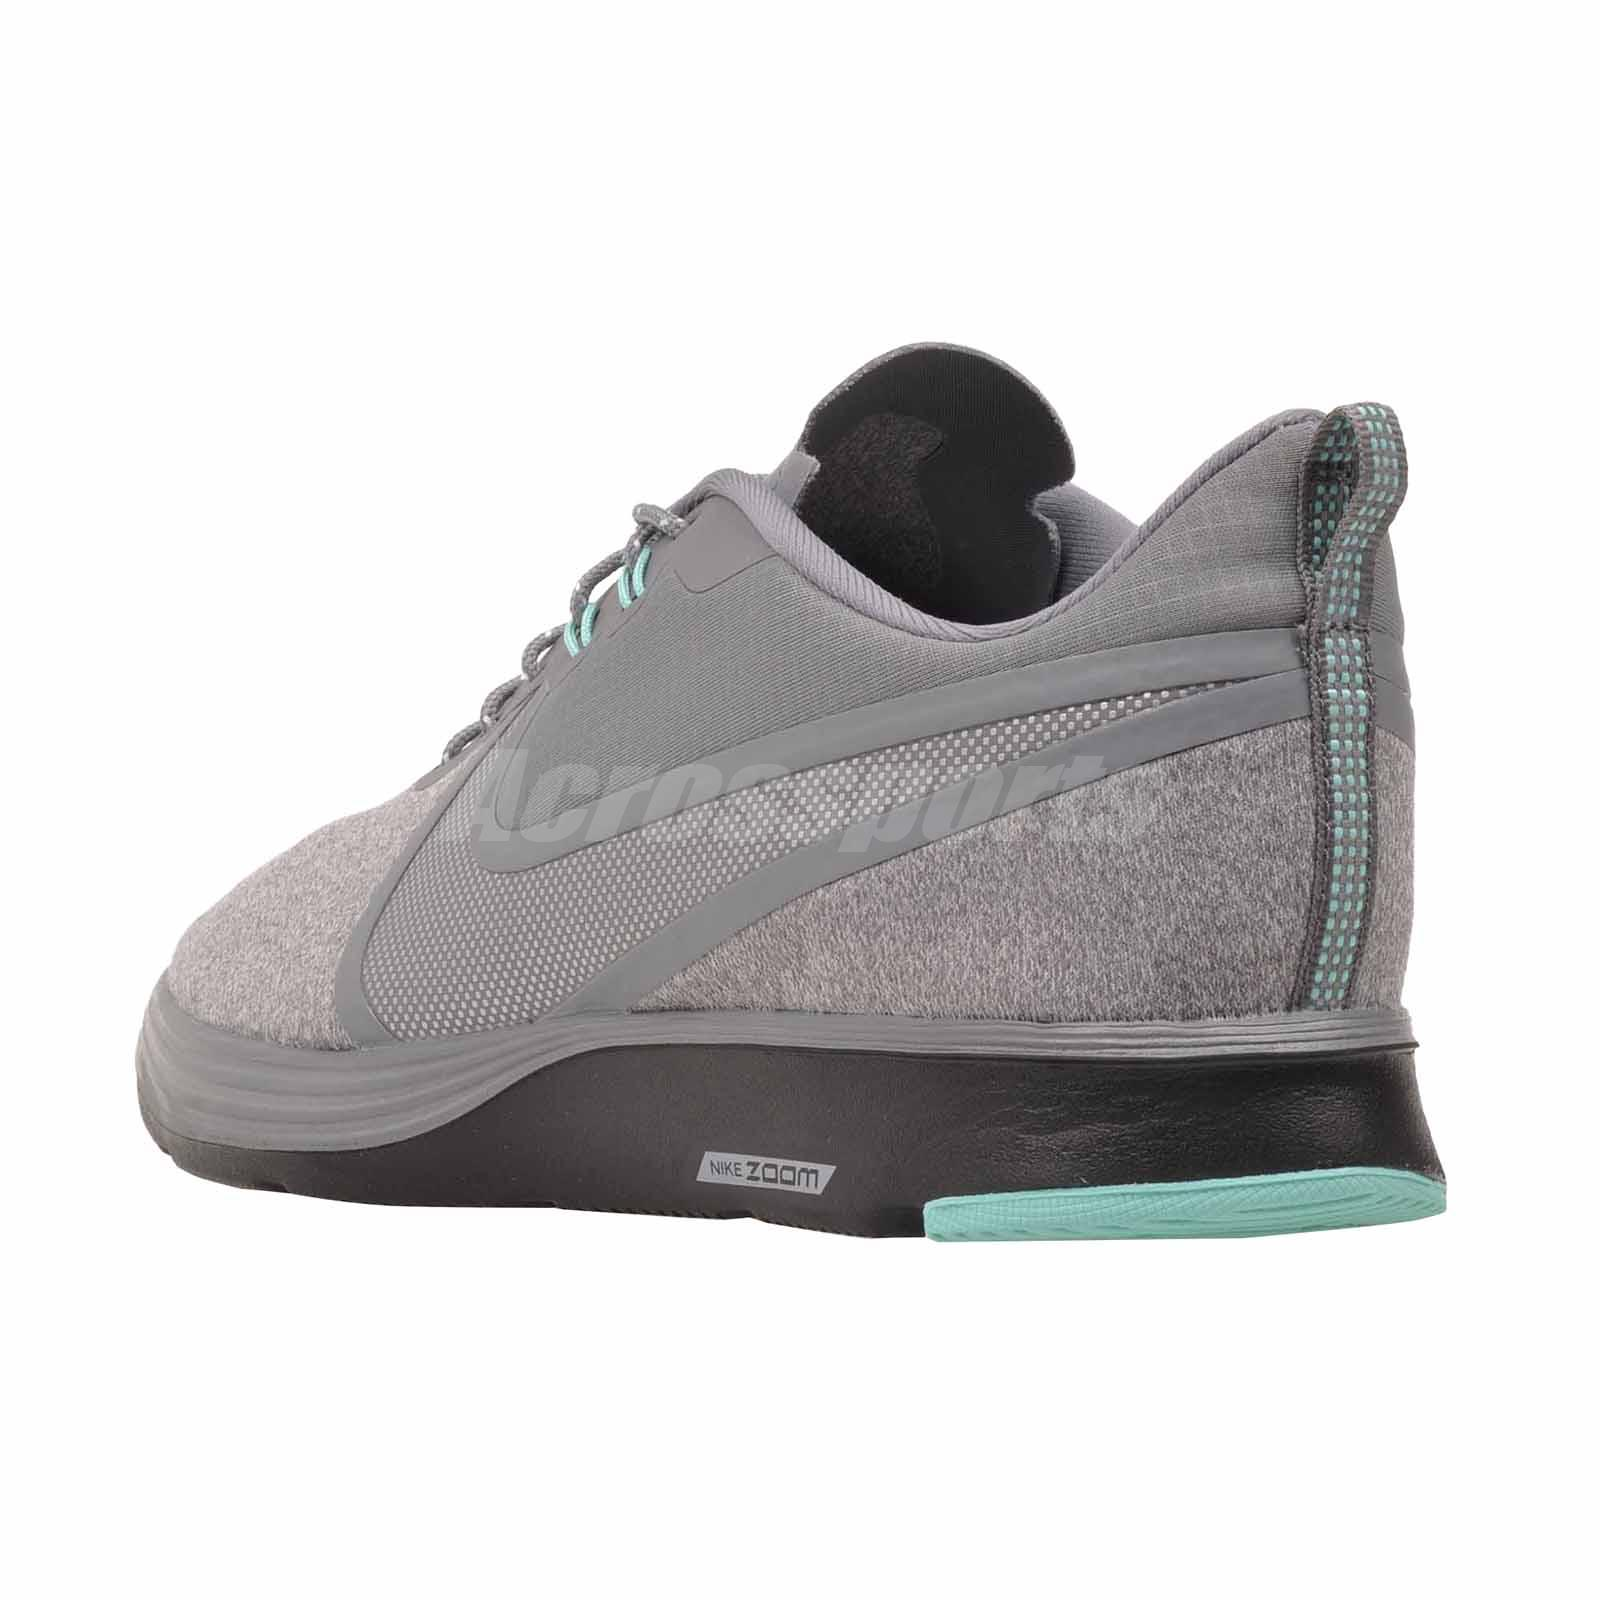 cheap for discount da4b2 0b911 Nike W Zoom Strike 2 Shield Running Womens Shoes NWOB AR9800-100   eBay